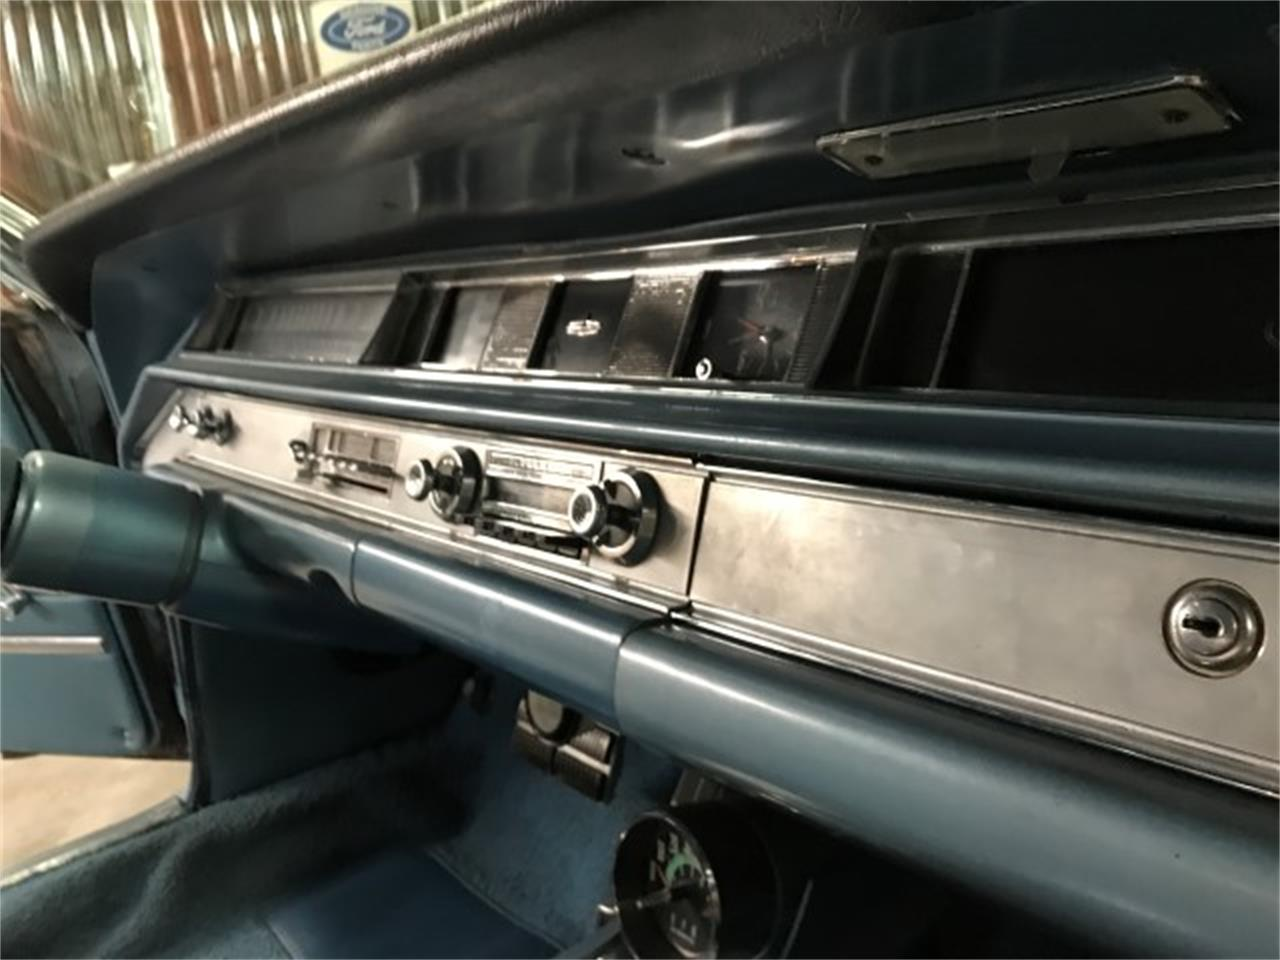 Large Picture of Classic '64 Oldsmobile Jetstar 88 located in SHERWOOD Oregon - $17,500.00 Offered by Cool Classic Rides LLC - LFW4